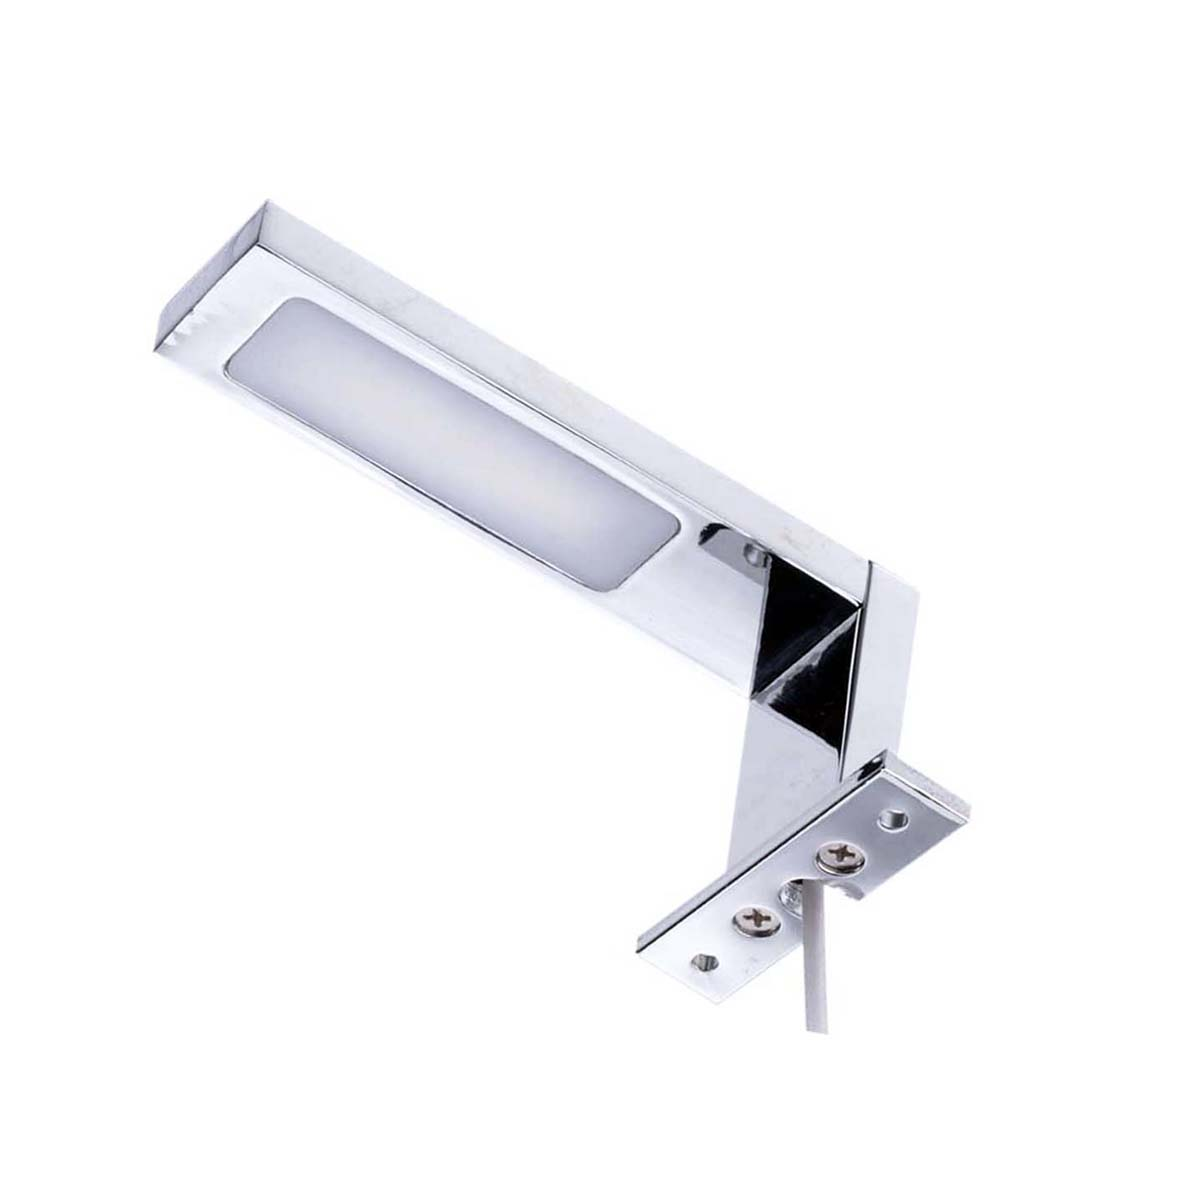 Lamp led wall 3W Bath wall Sconce LED